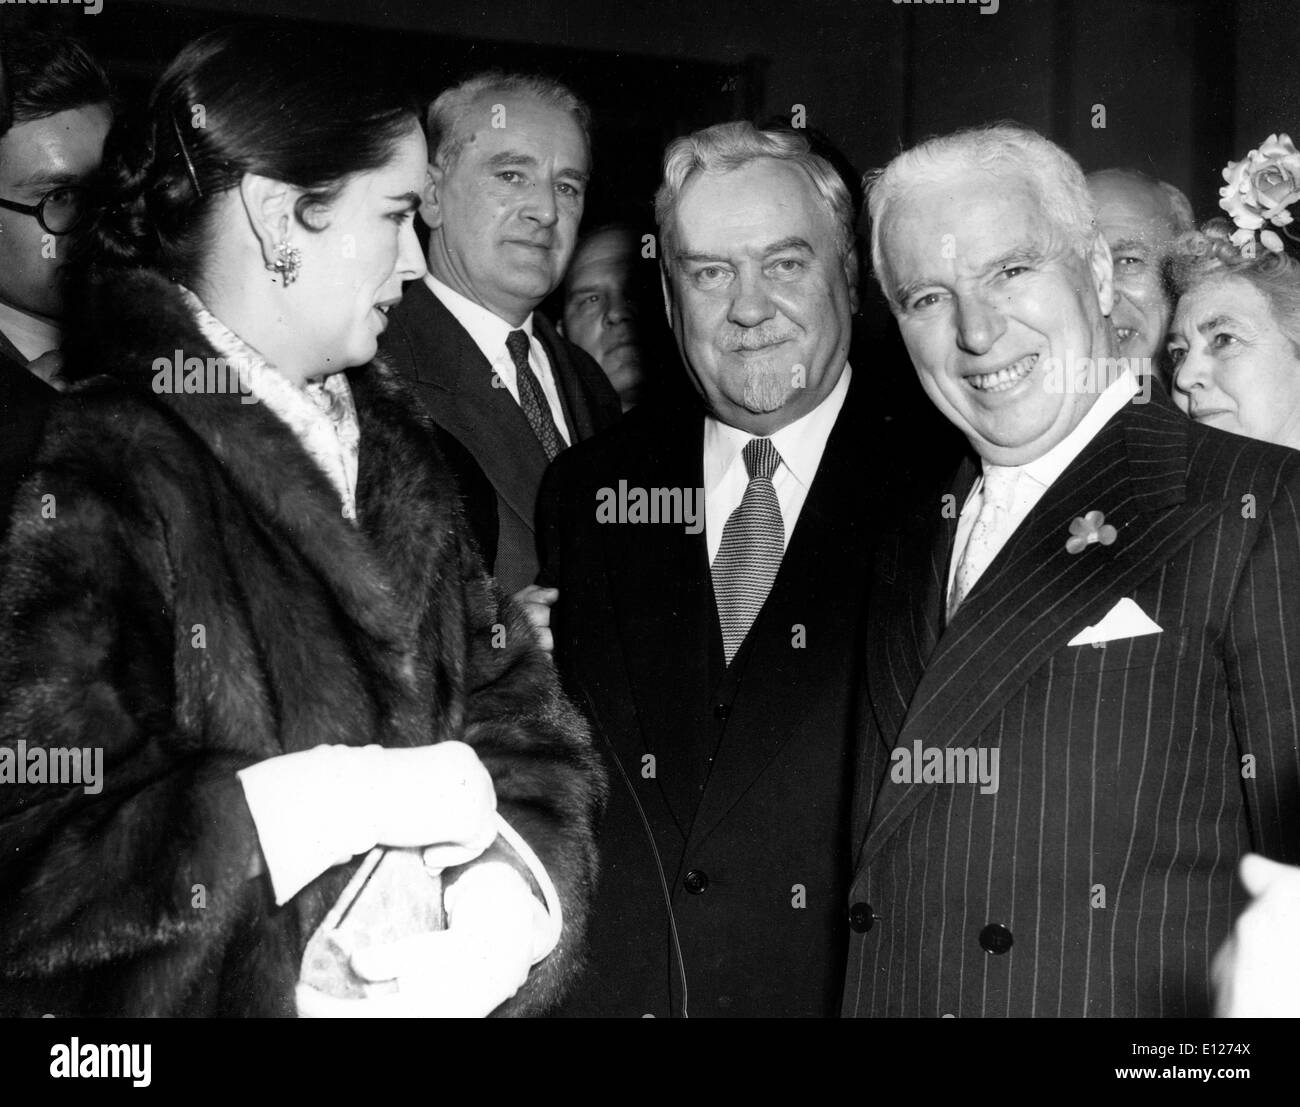 London, England, United Kingdom - OONA CHAPLIN, left, and CHARLIE CHAPLIN, right. Exact date unknown.:  ictur - Stock Image